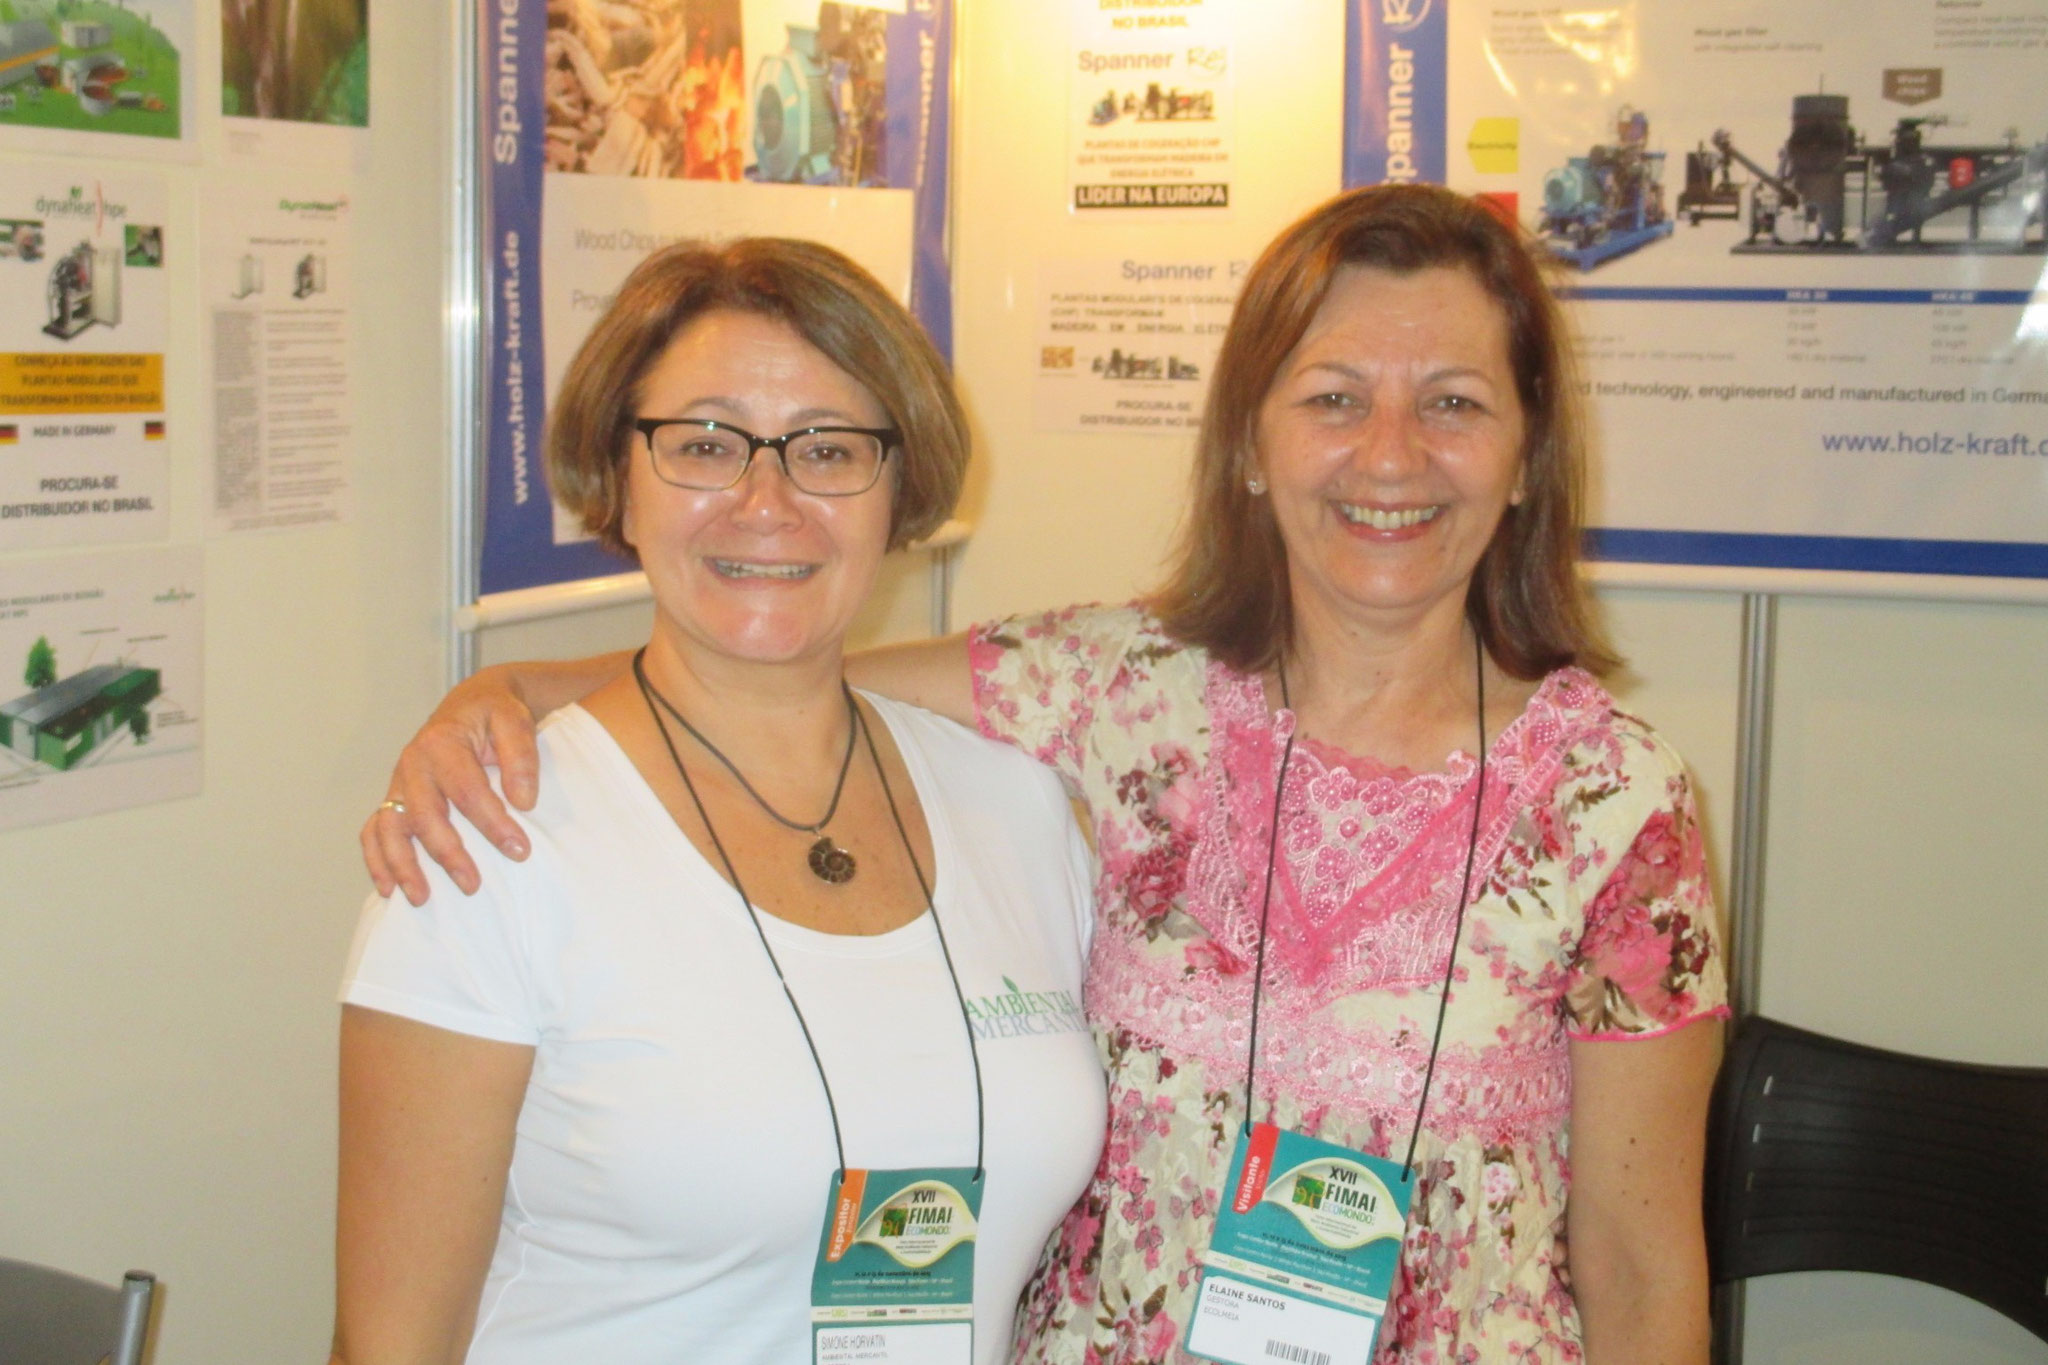 Exhibiting at FIMAI ECOMONDO in Sao Paulo, Brazil! With Elaine Santos, our business partner!